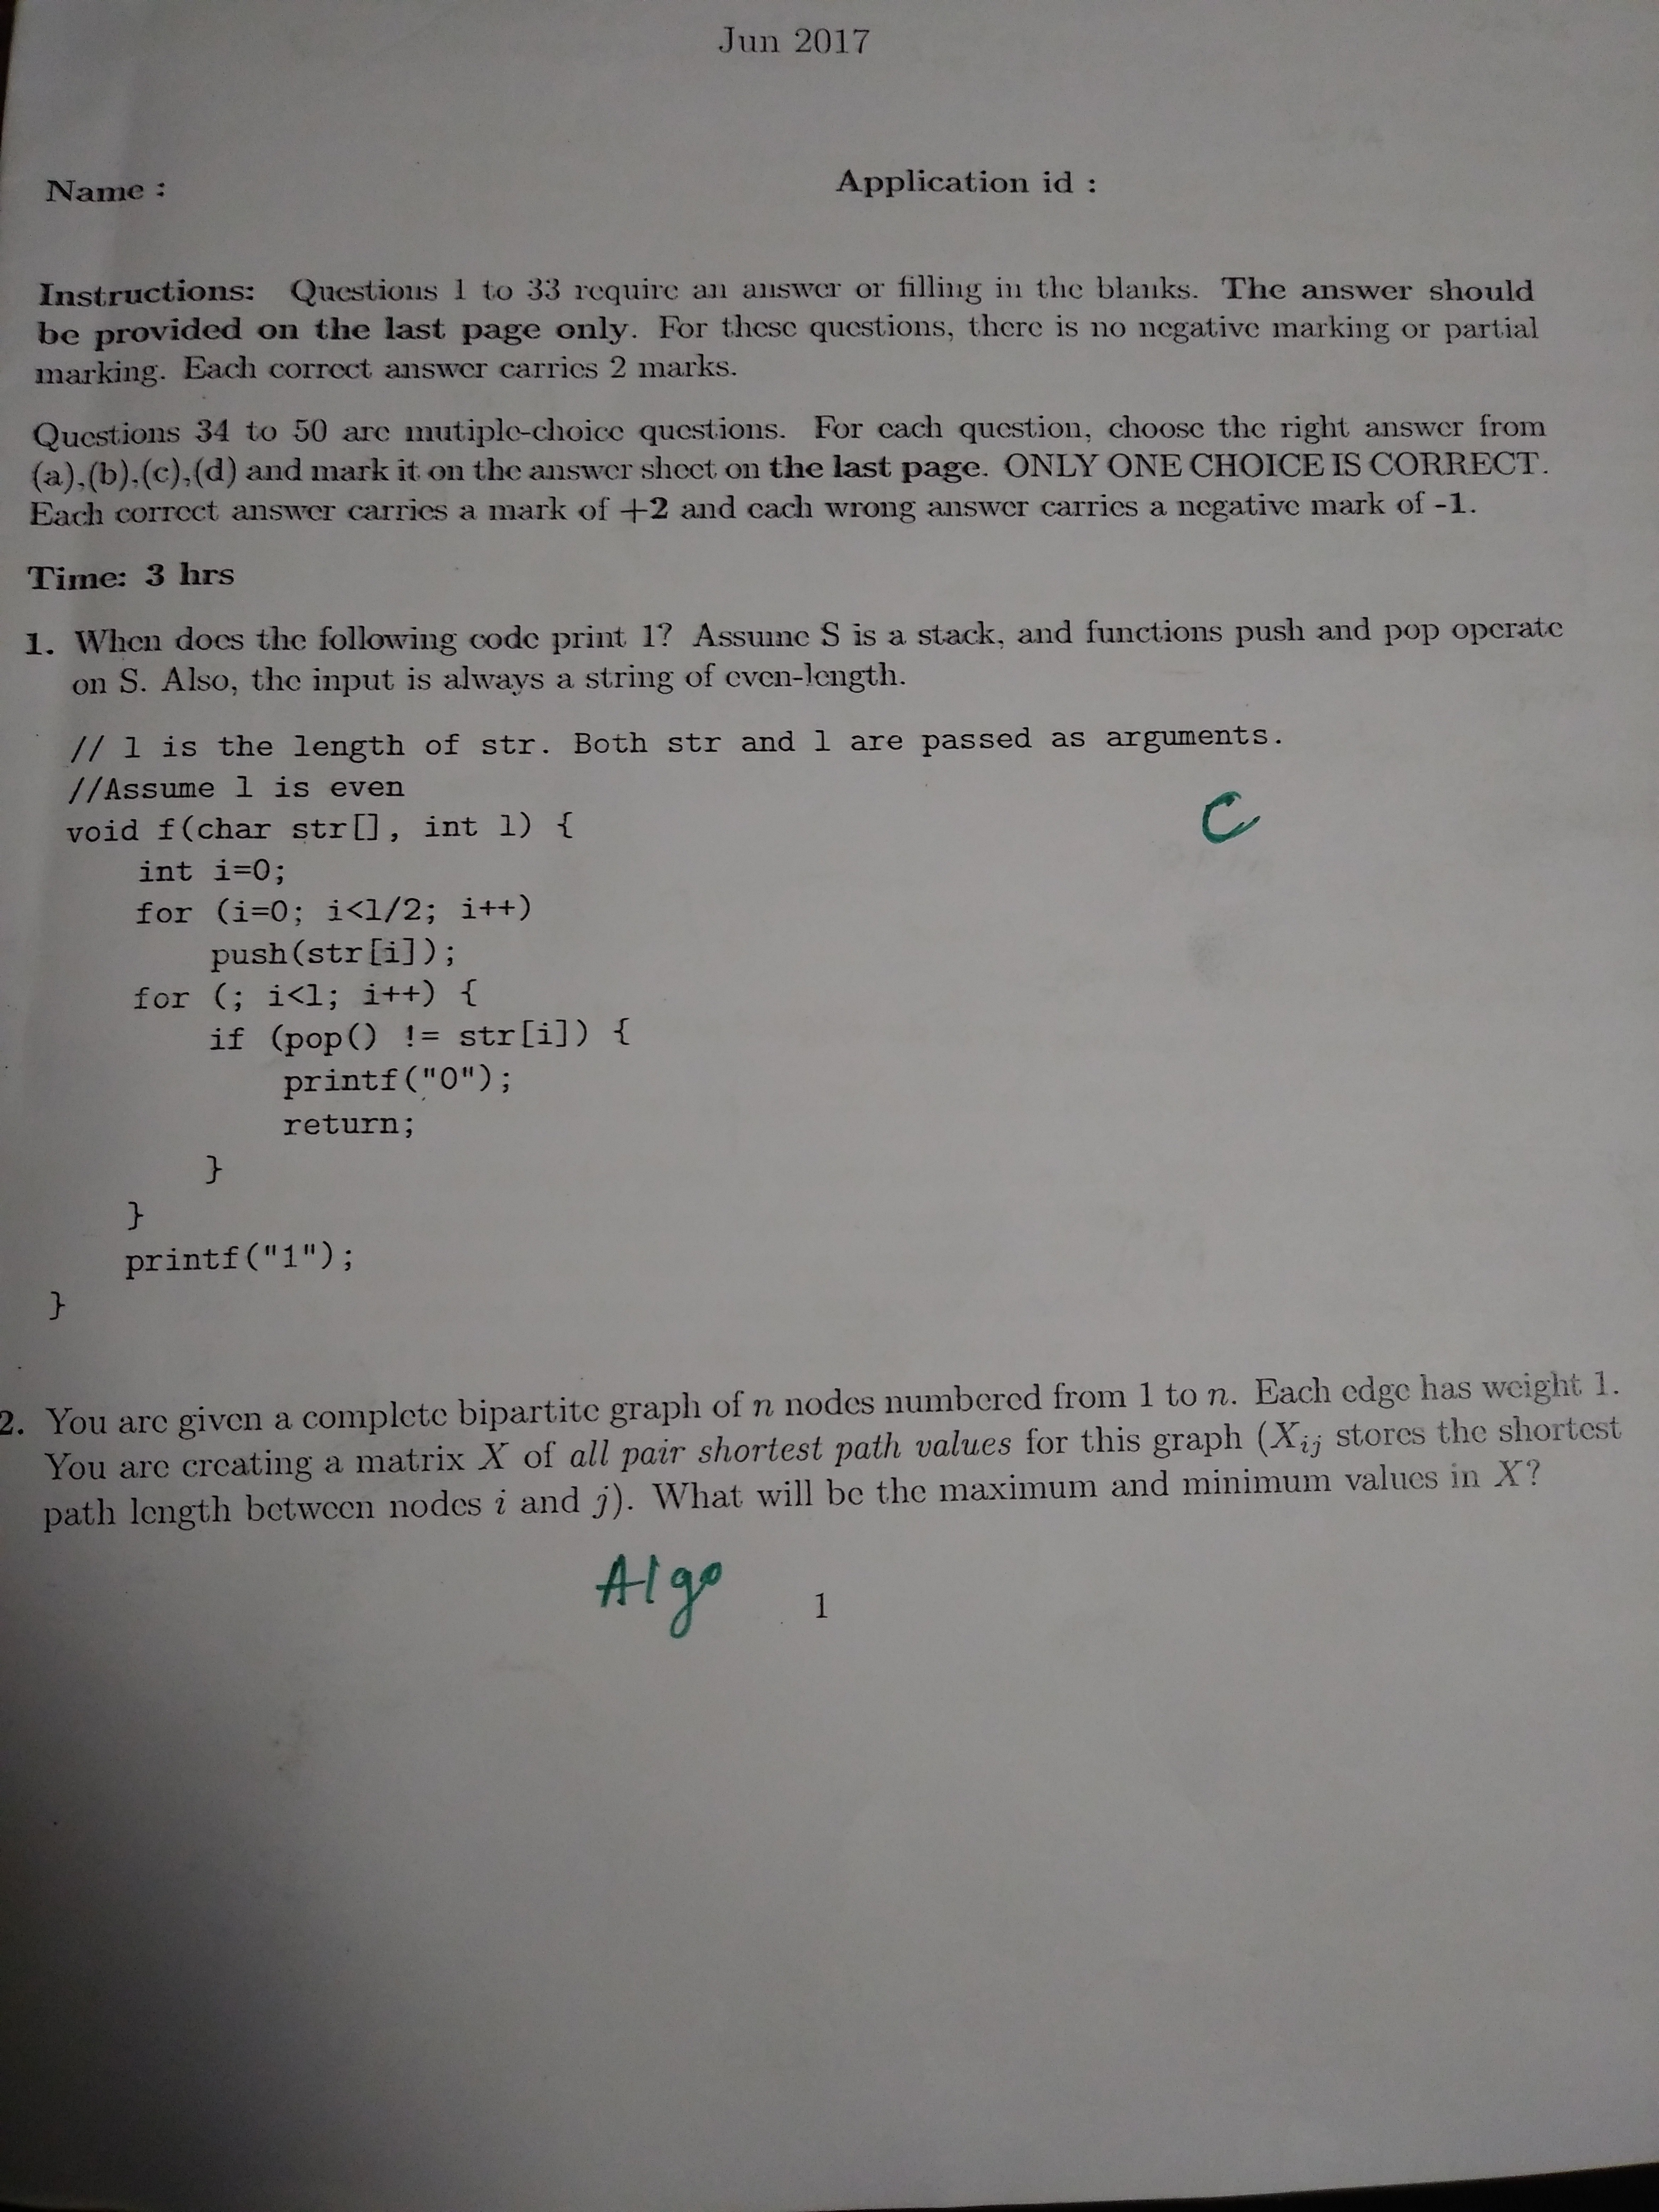 How to prepare for the IIT PhD written test - Quora